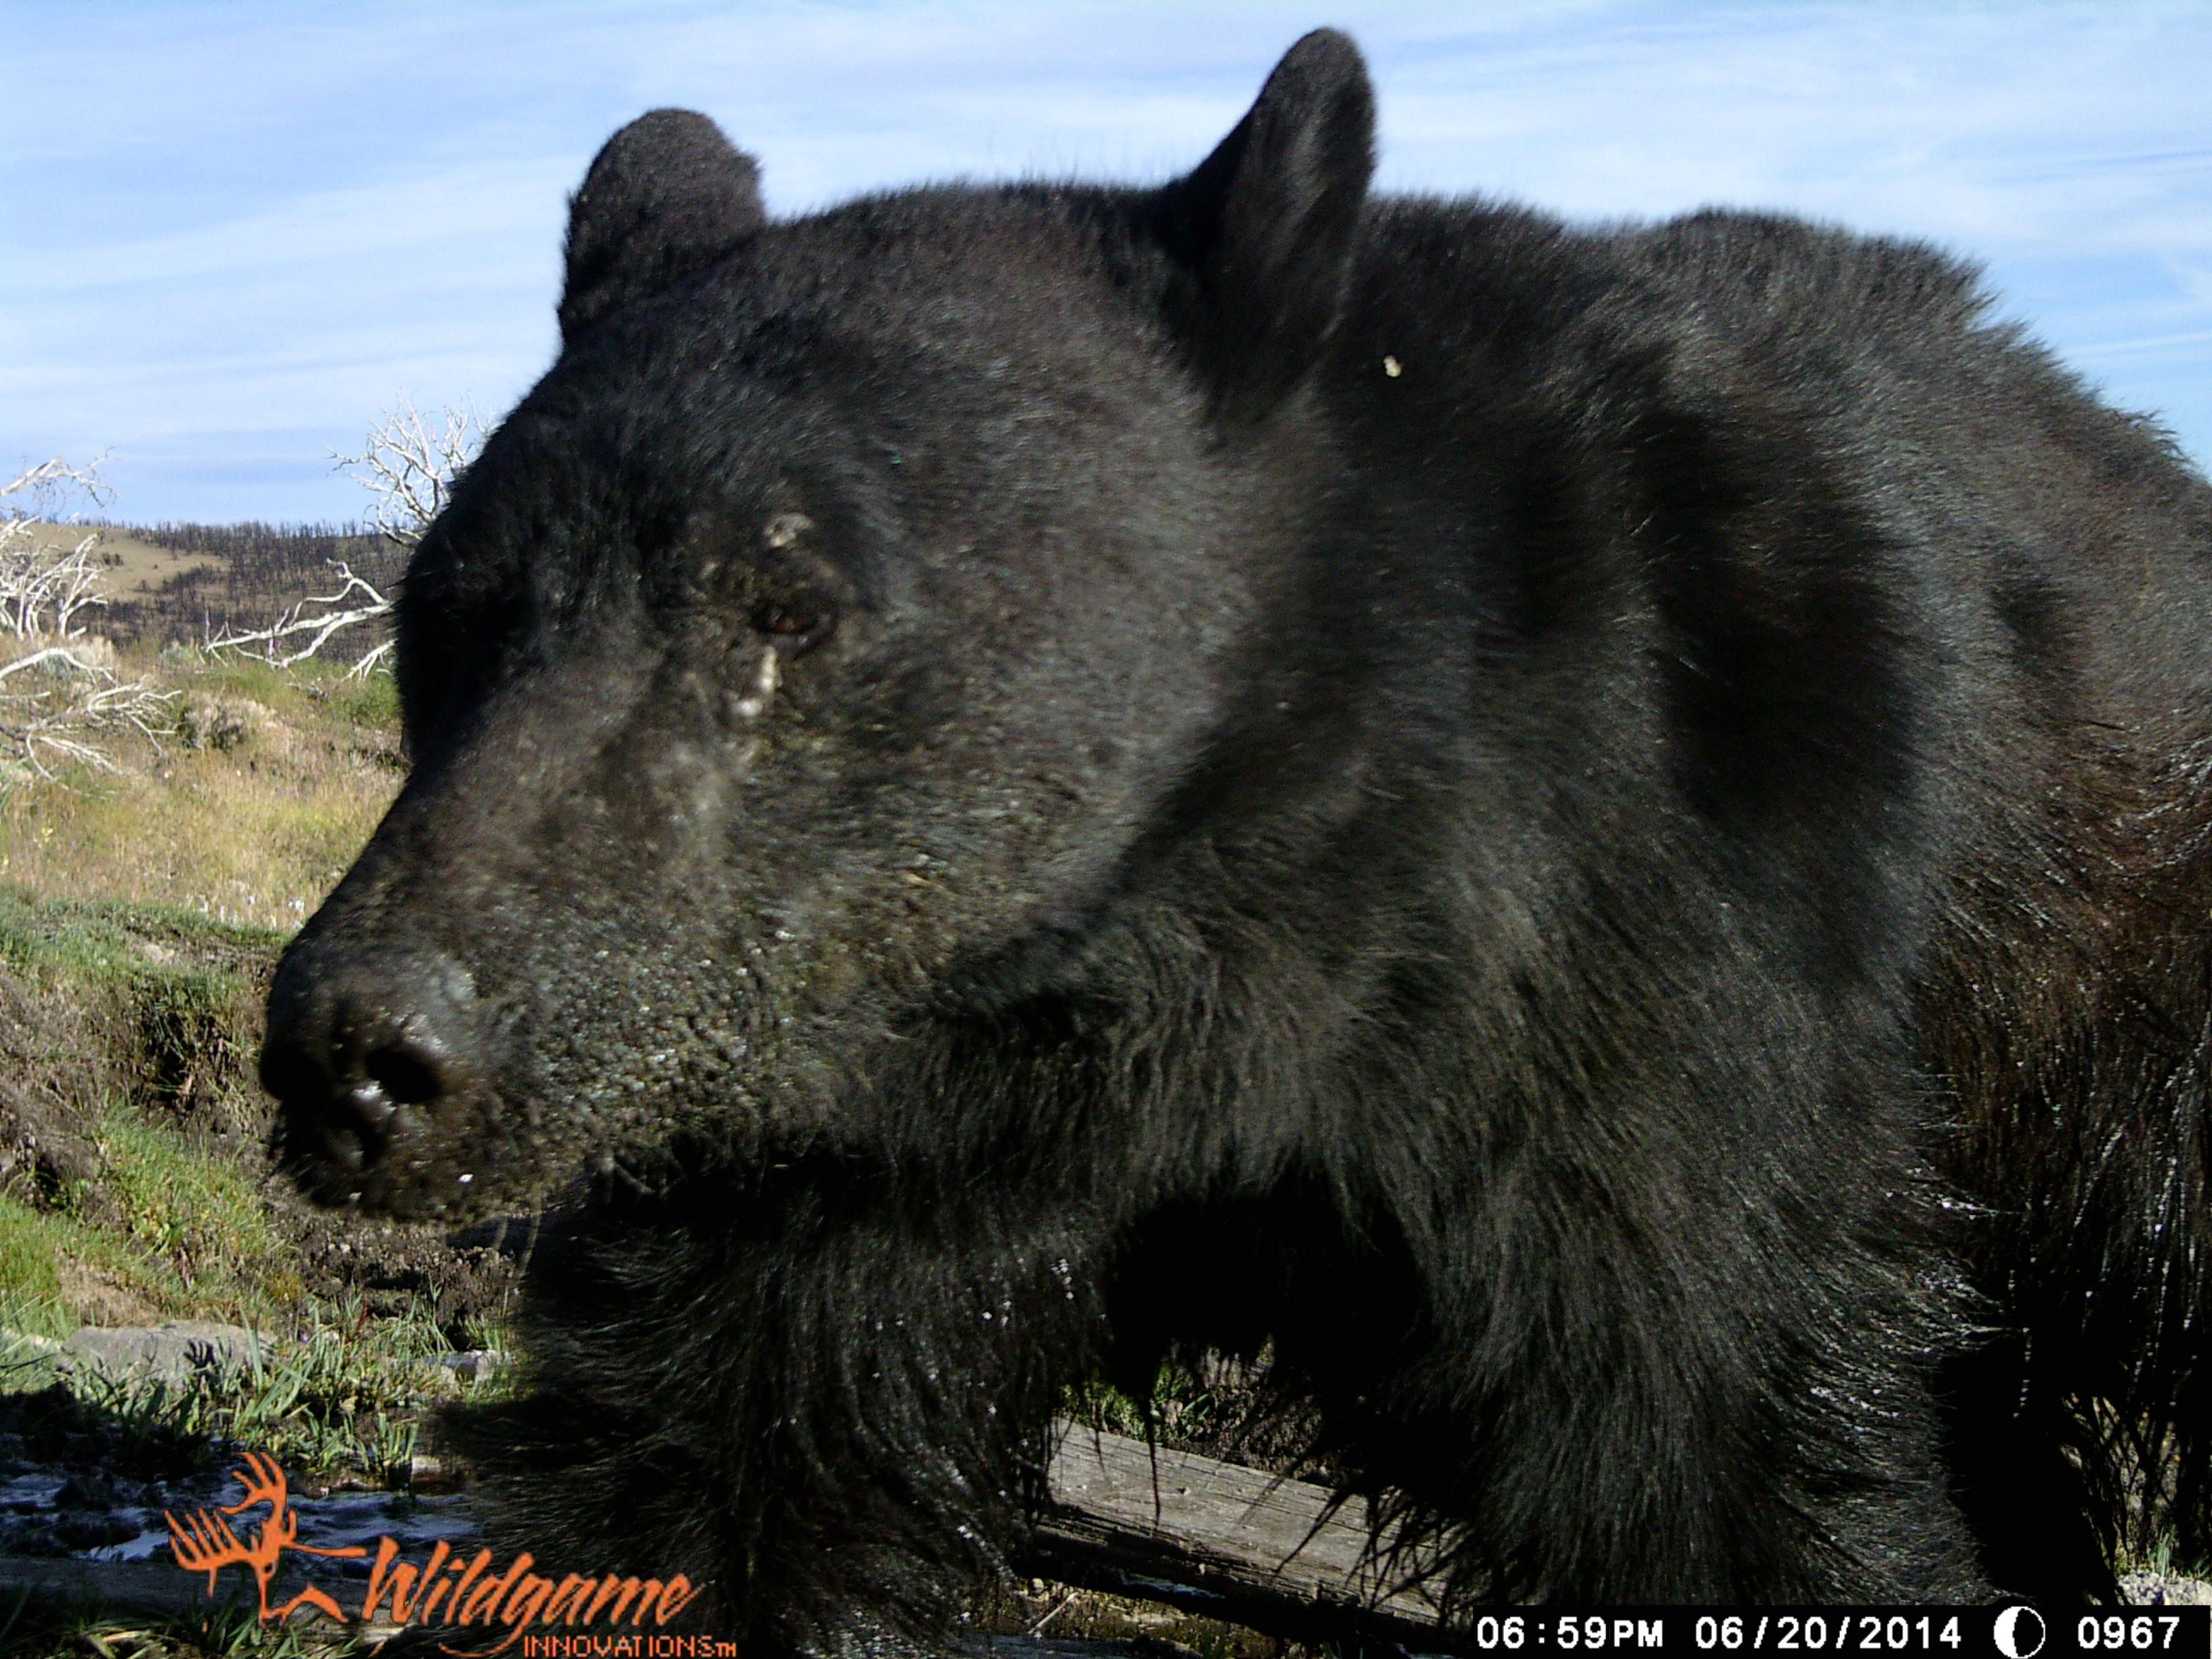 A trail camera captures a bear on June 20, 2014 (Photo courtesy NDOW)